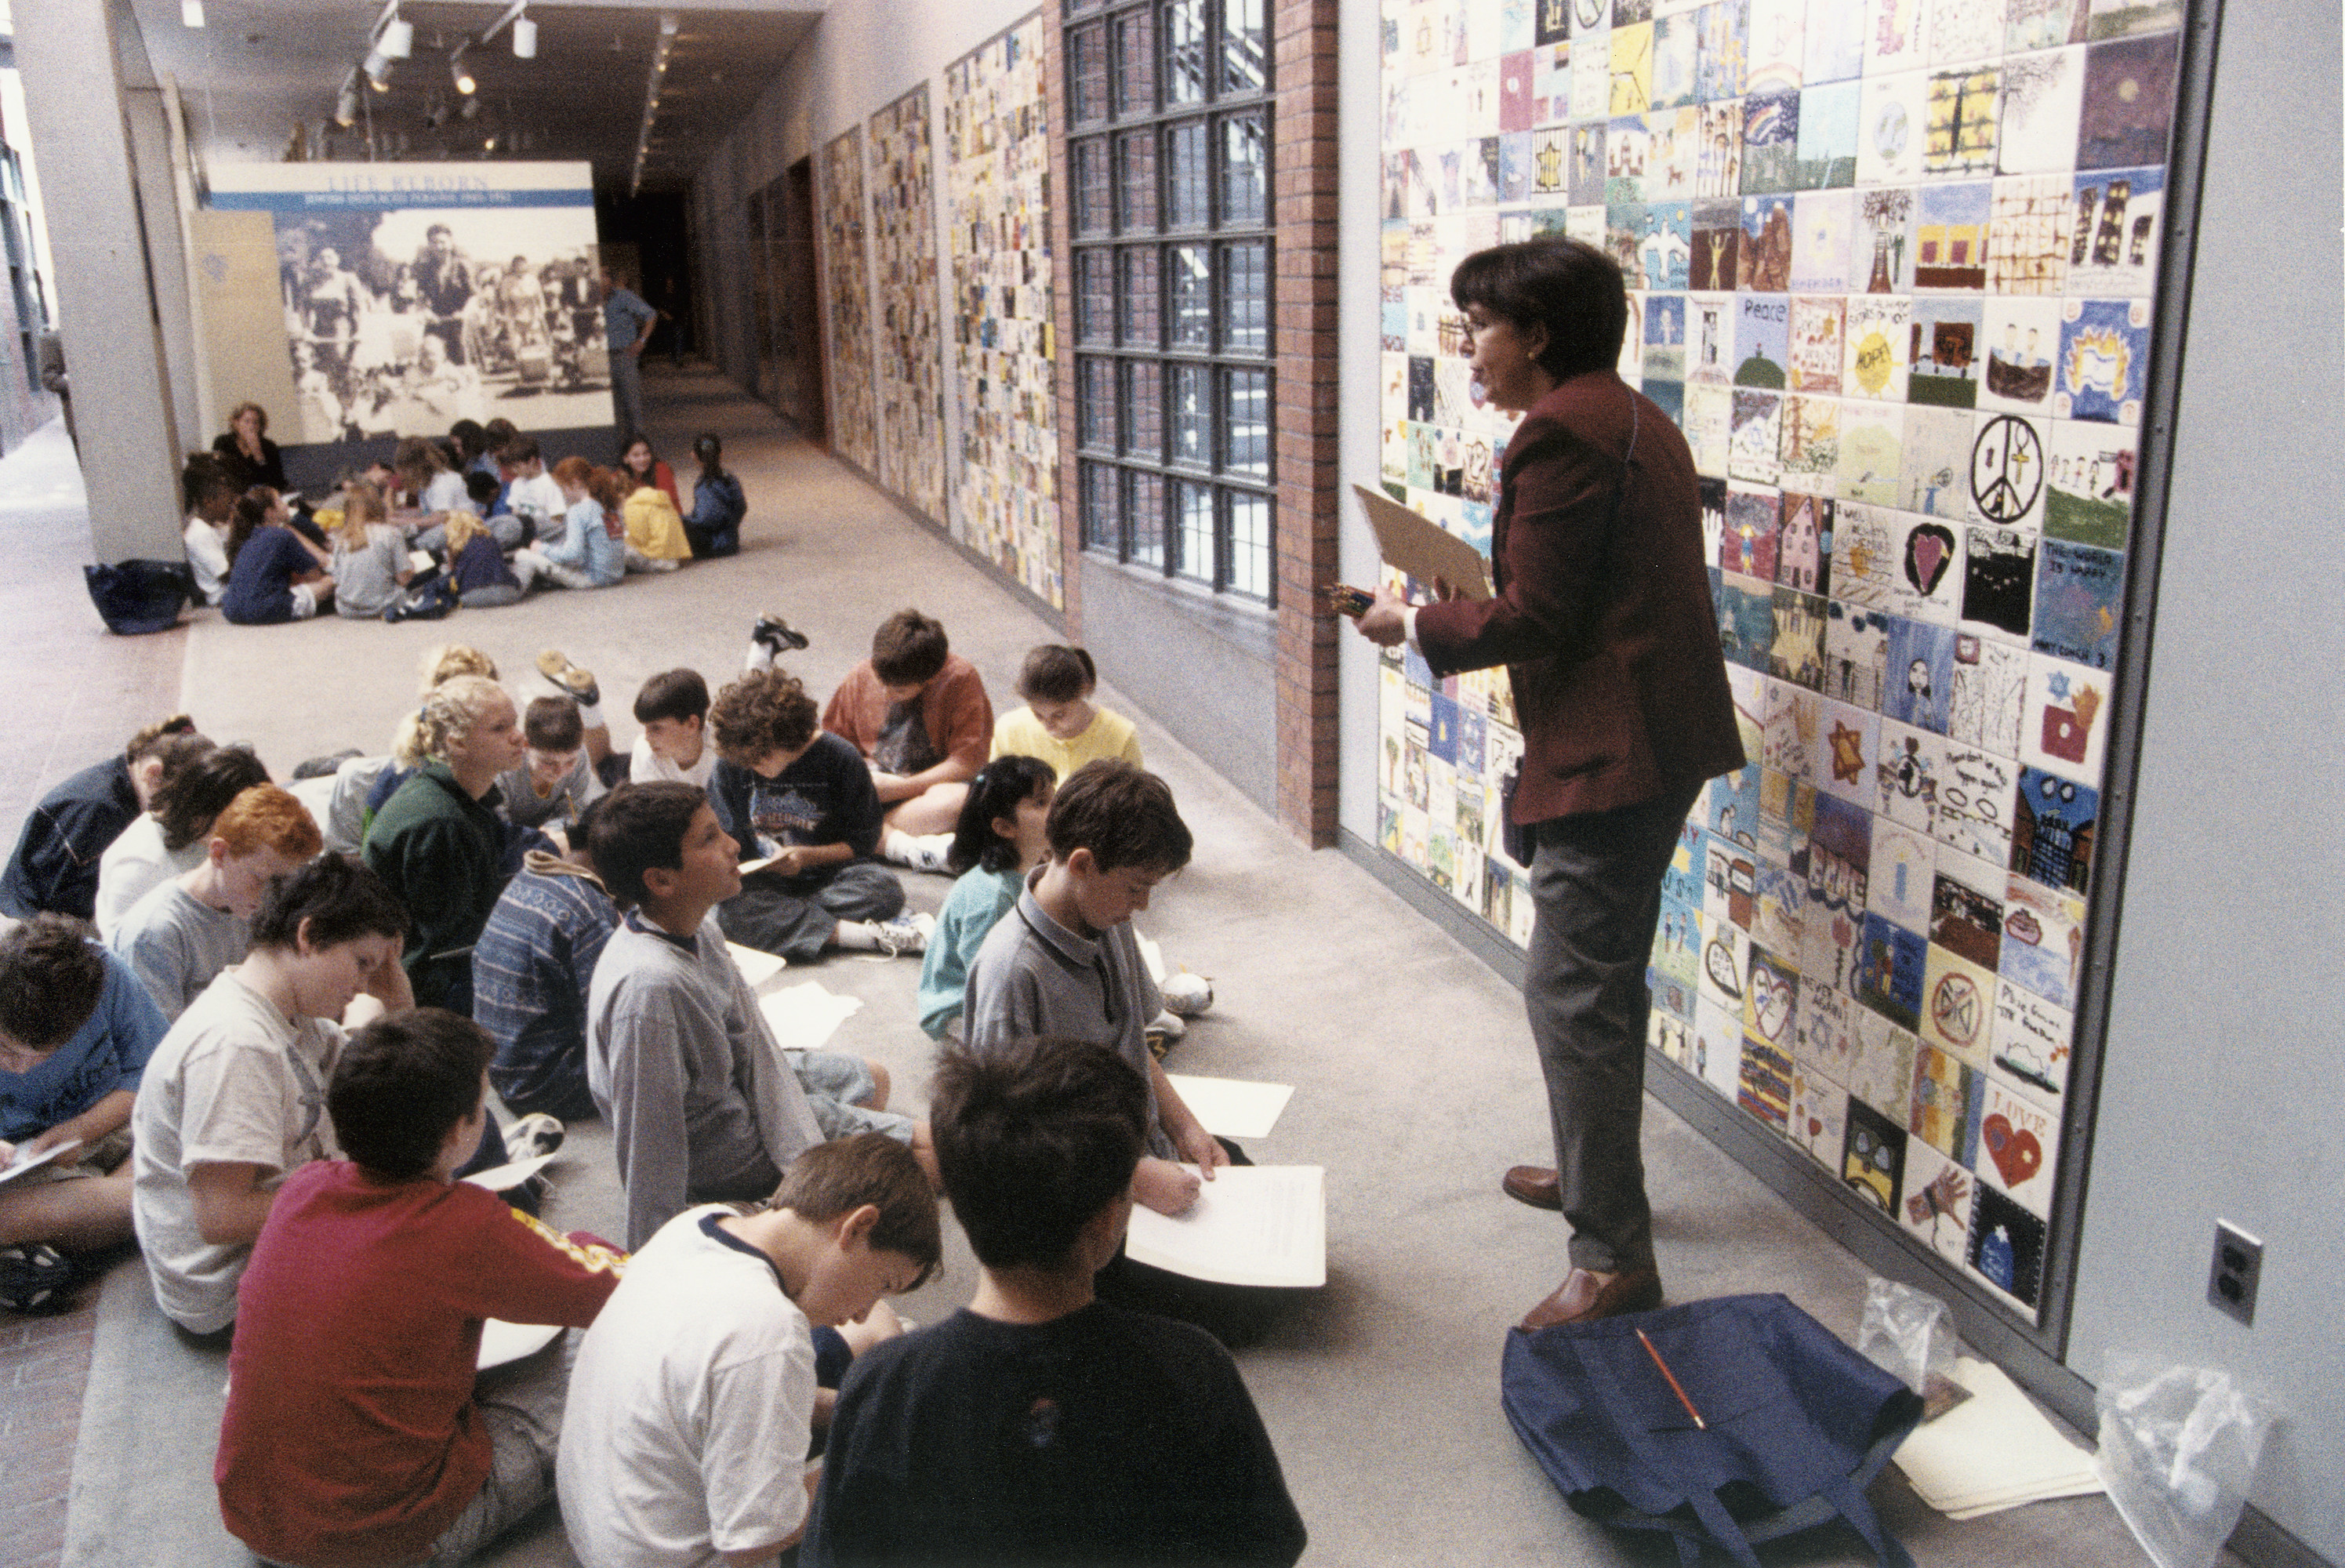 A member of the Visitors Services staff talks to a school group in front of the children's Tile Wall in the Gonda Education Center at the U.S. Holocaust Memorial Museum.